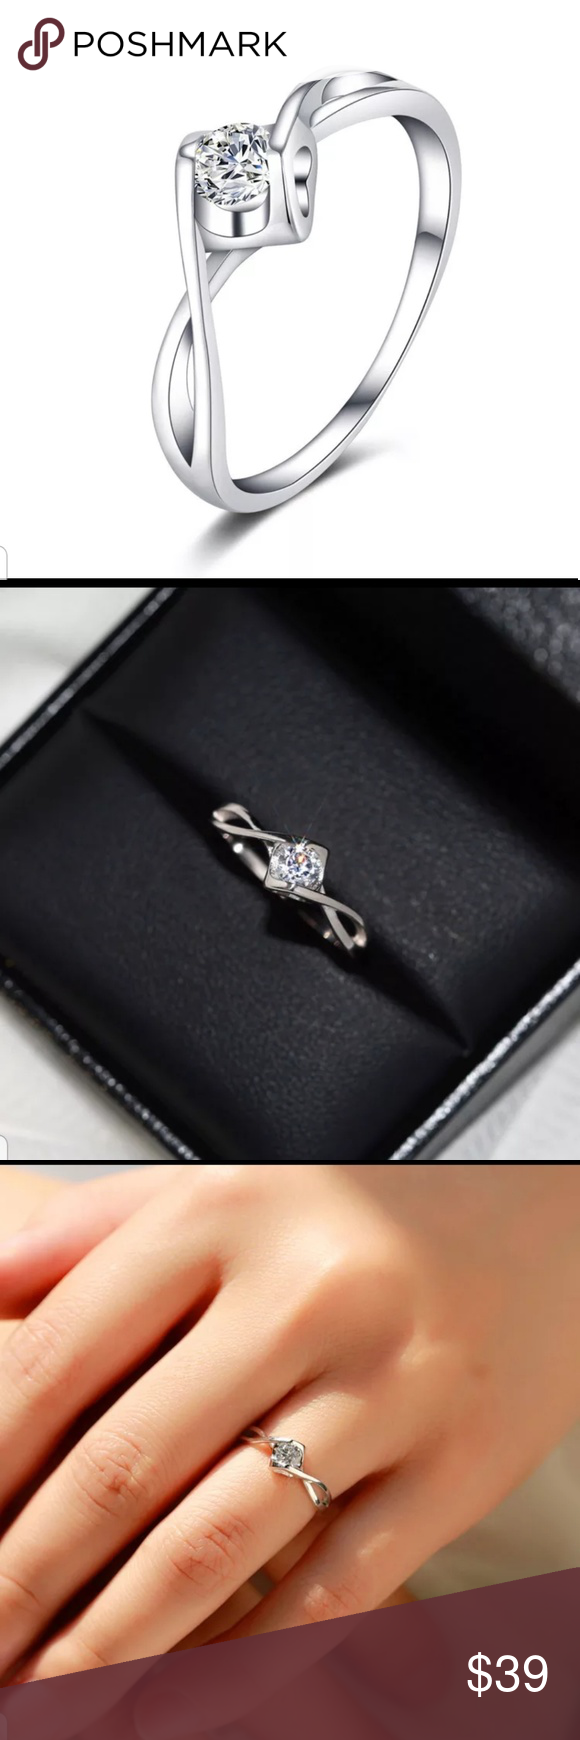 925 Silver Crystal Zircon Stone Ring heart Luxury Female Small Round Engagement ... #Crystal #engagement #Female #heart #Luxury #Ring #silver #Small #Stone #Zircon